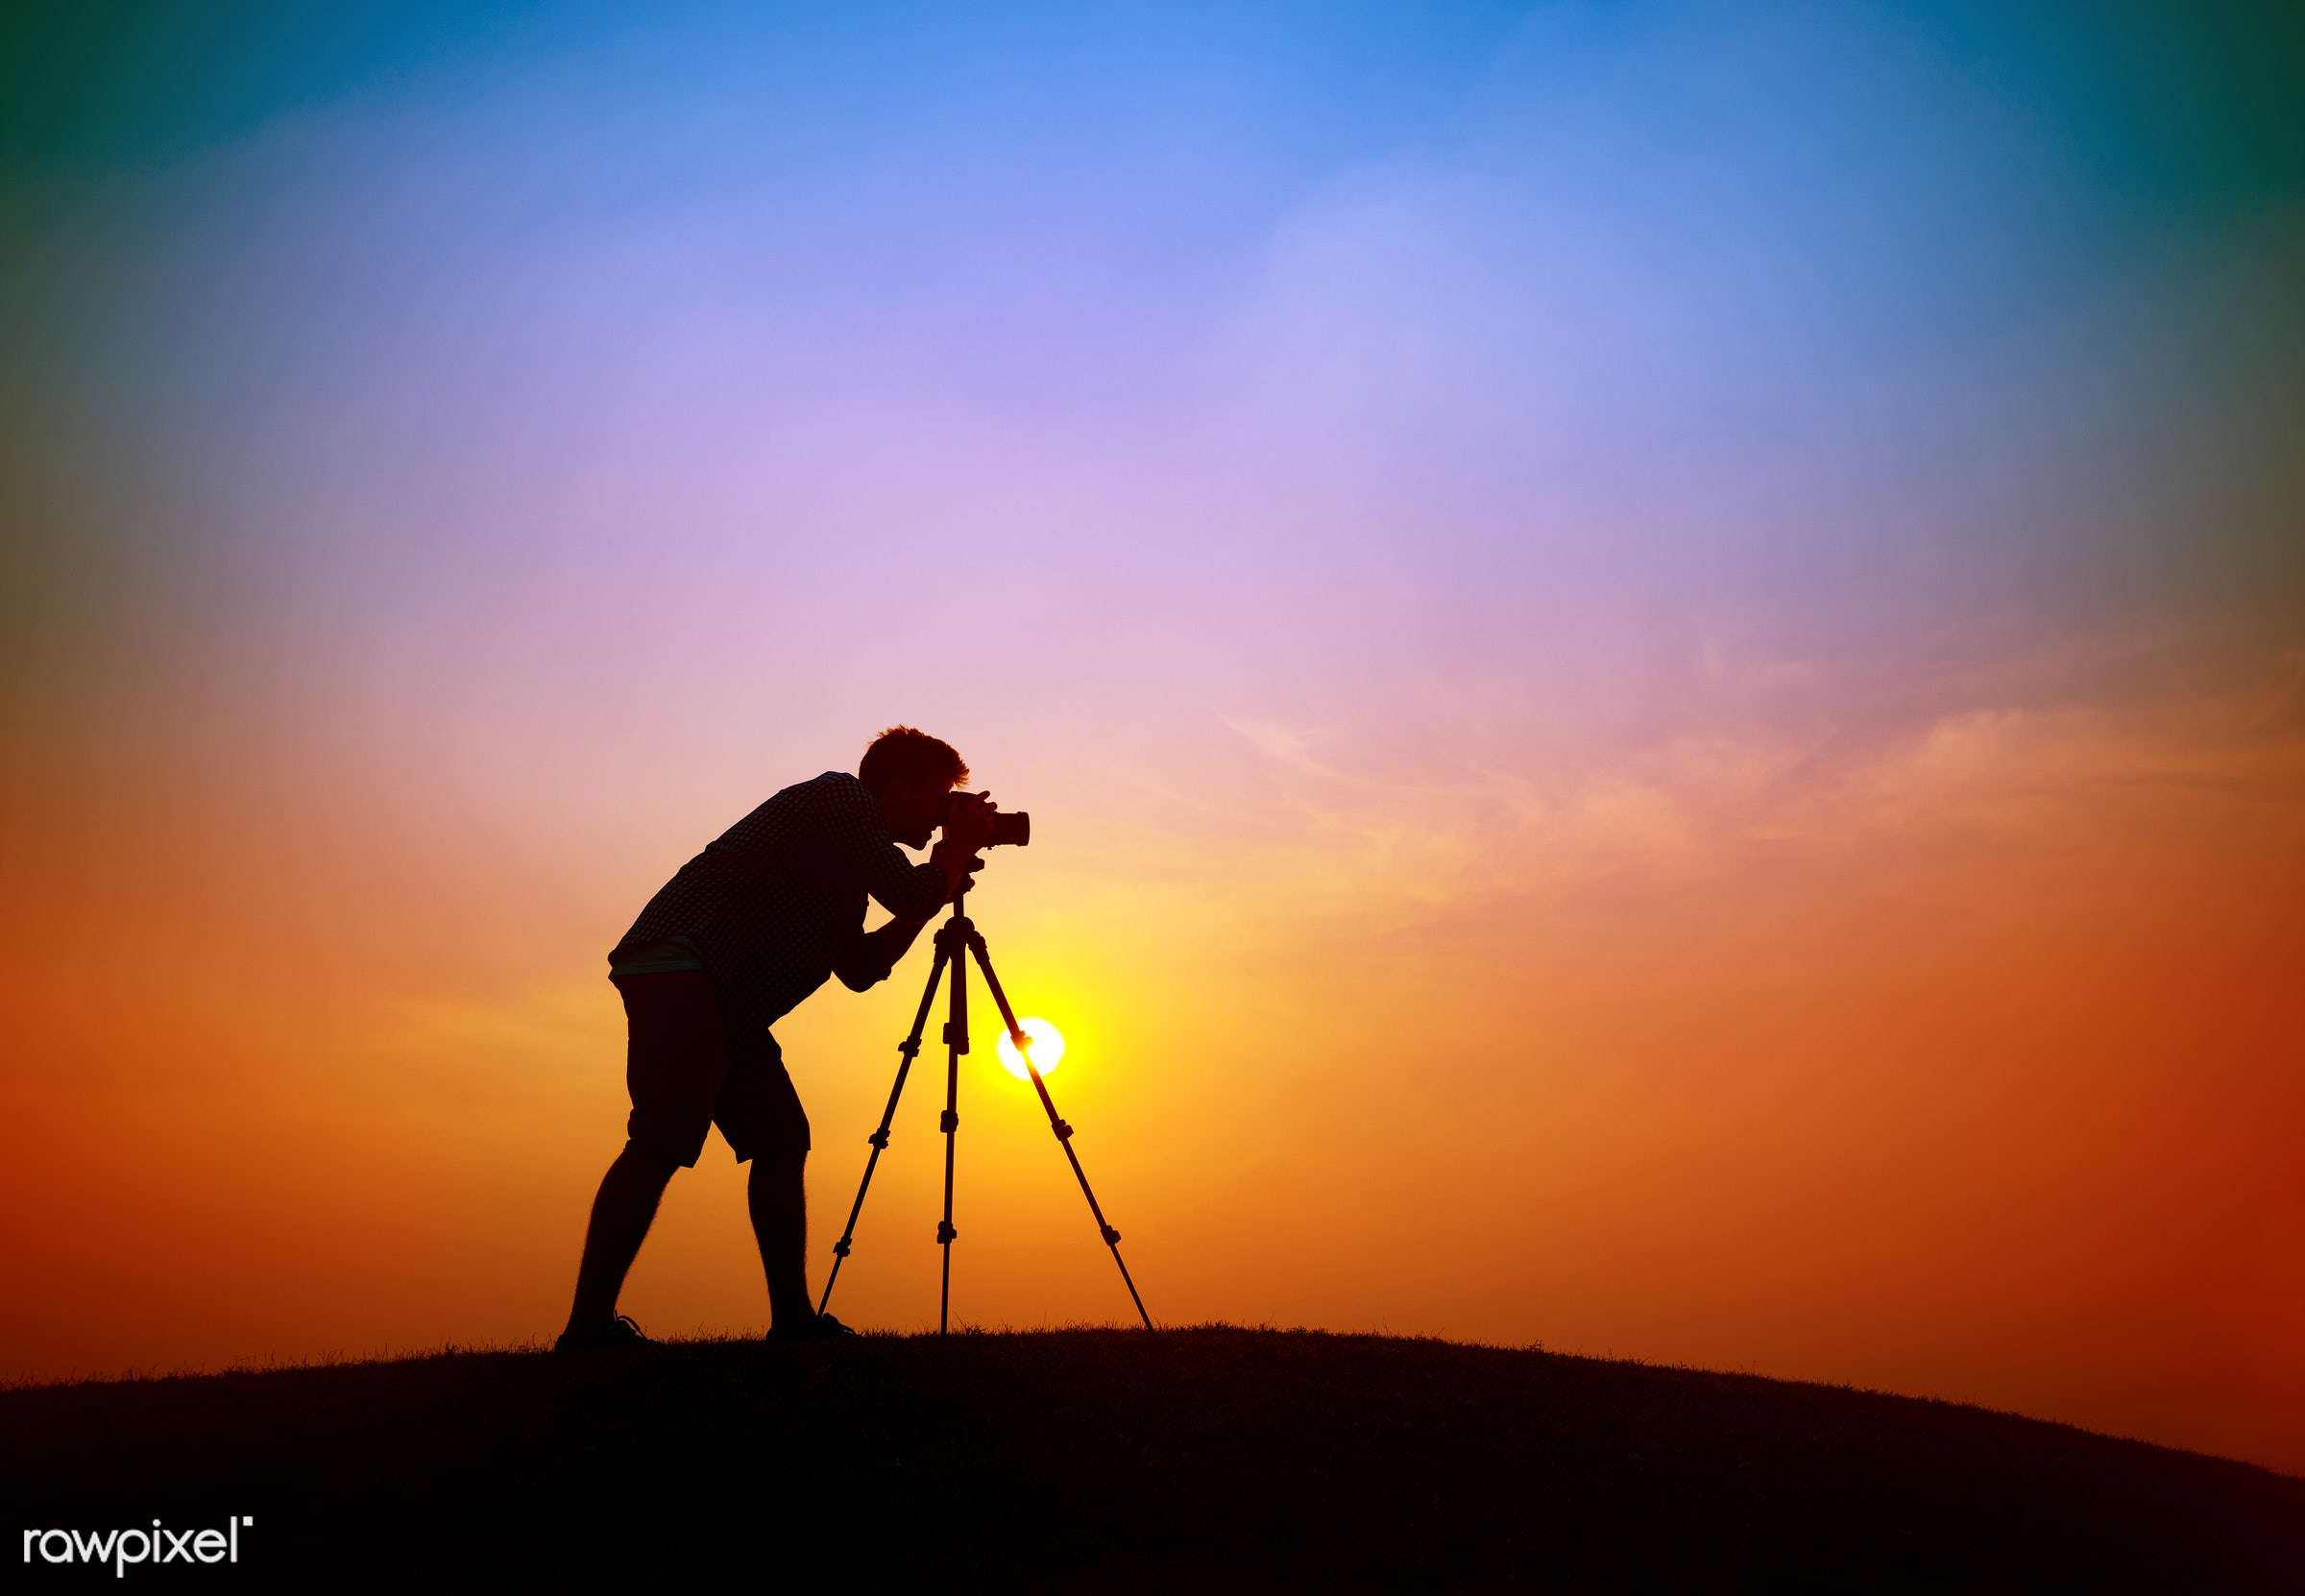 activity, adventure, alone, art, artist, camera, cameraman, colorful, concentration, concepts, creativity, dawn, evening,...